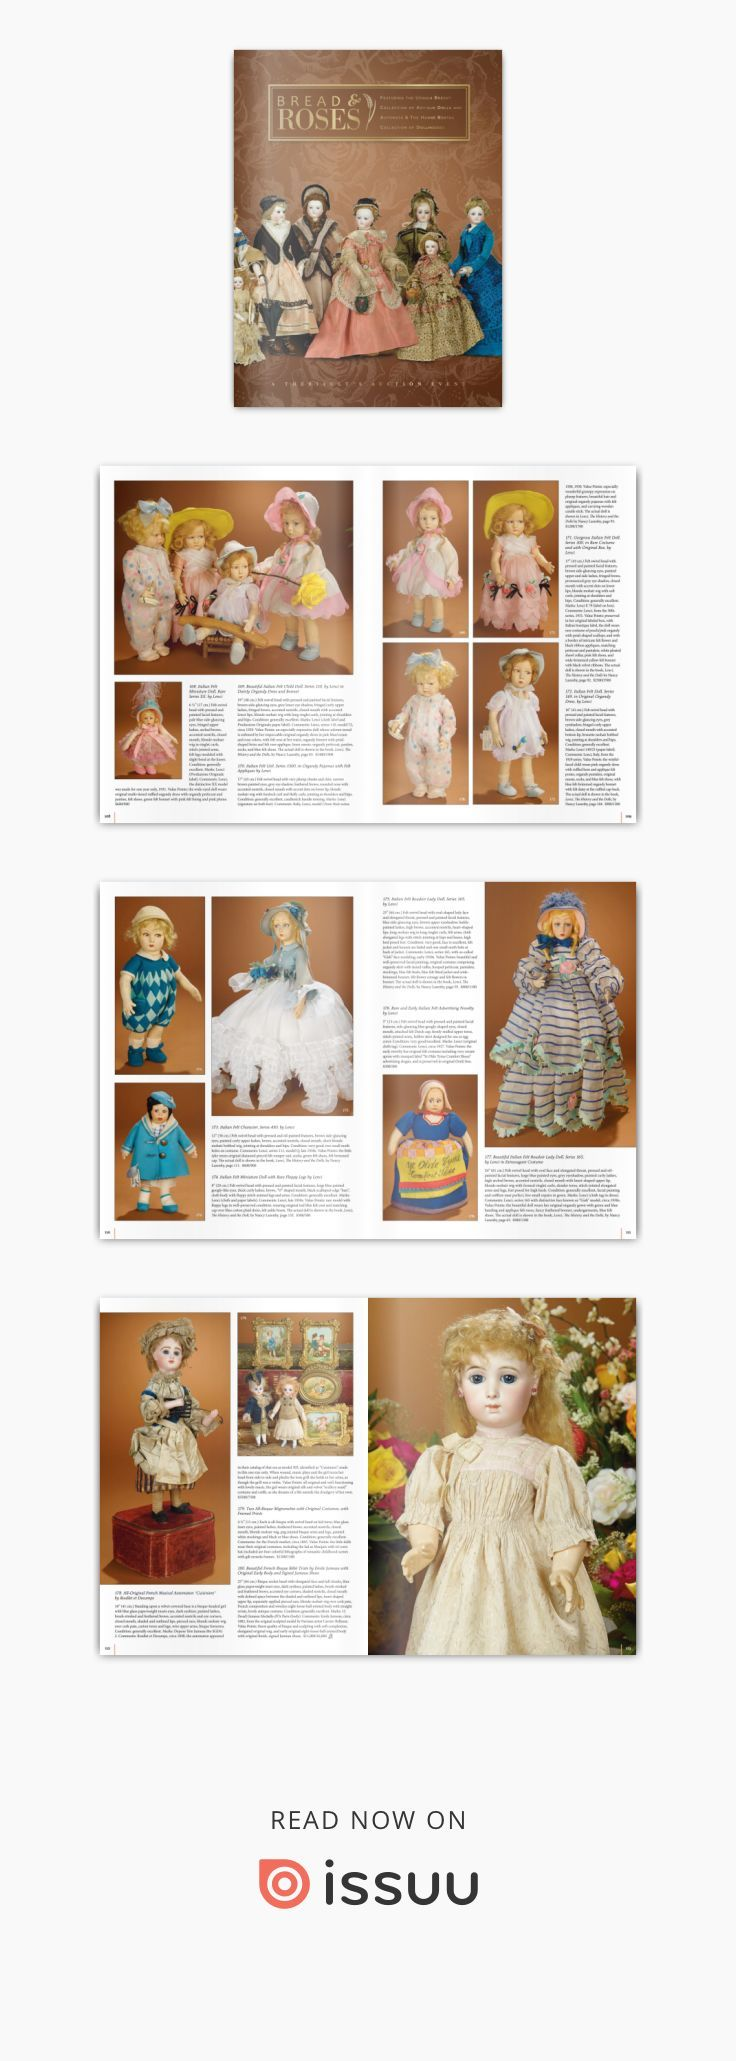 Bread & Roses - Marquis Antique Doll Auction  July 26, 2016 at the Mayflower Hotel in Washington, DC to order the catalog http://theriaults.com/catalogs/